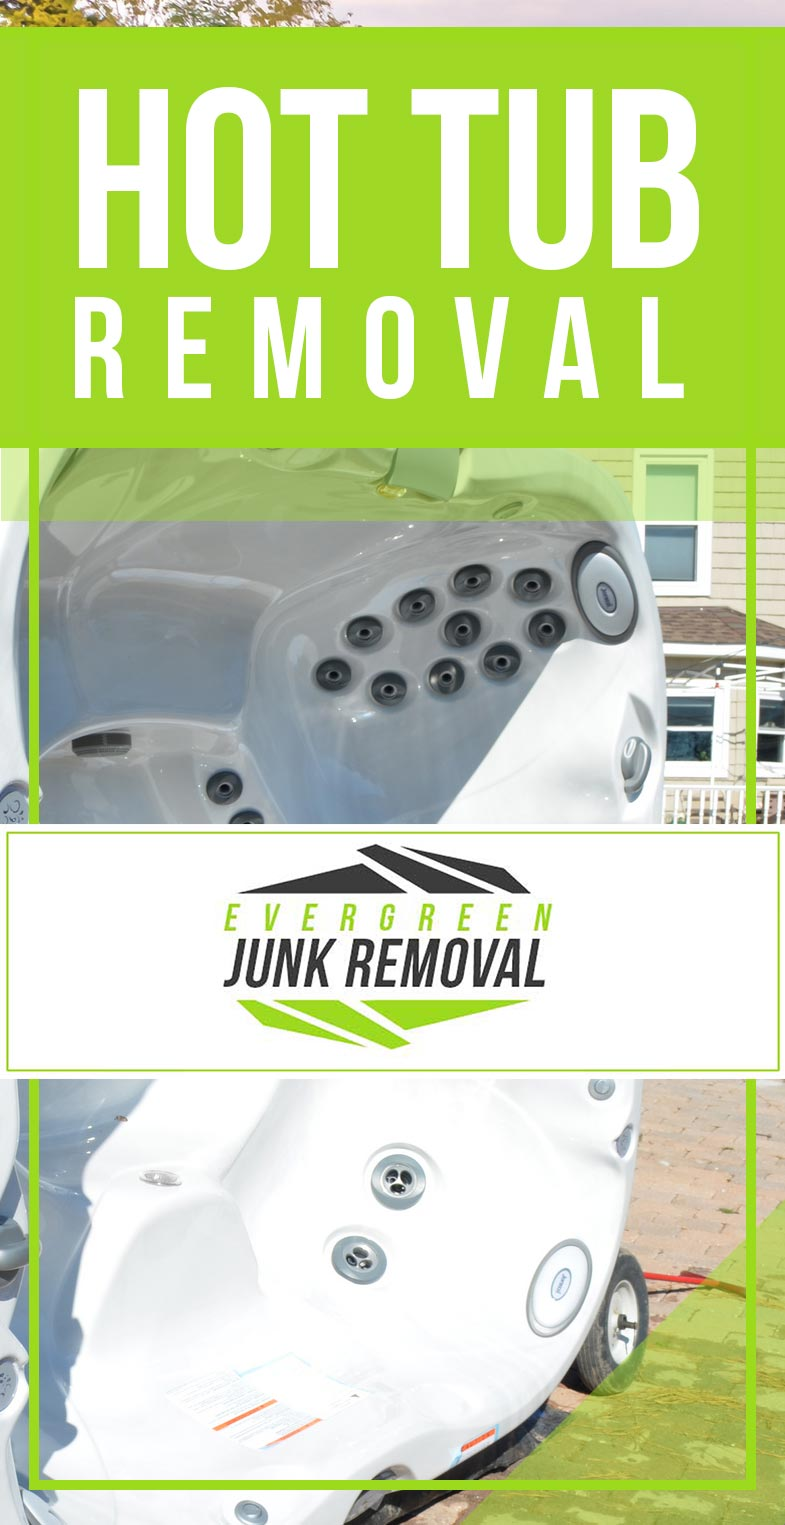 Chaska Hot Tub Removal